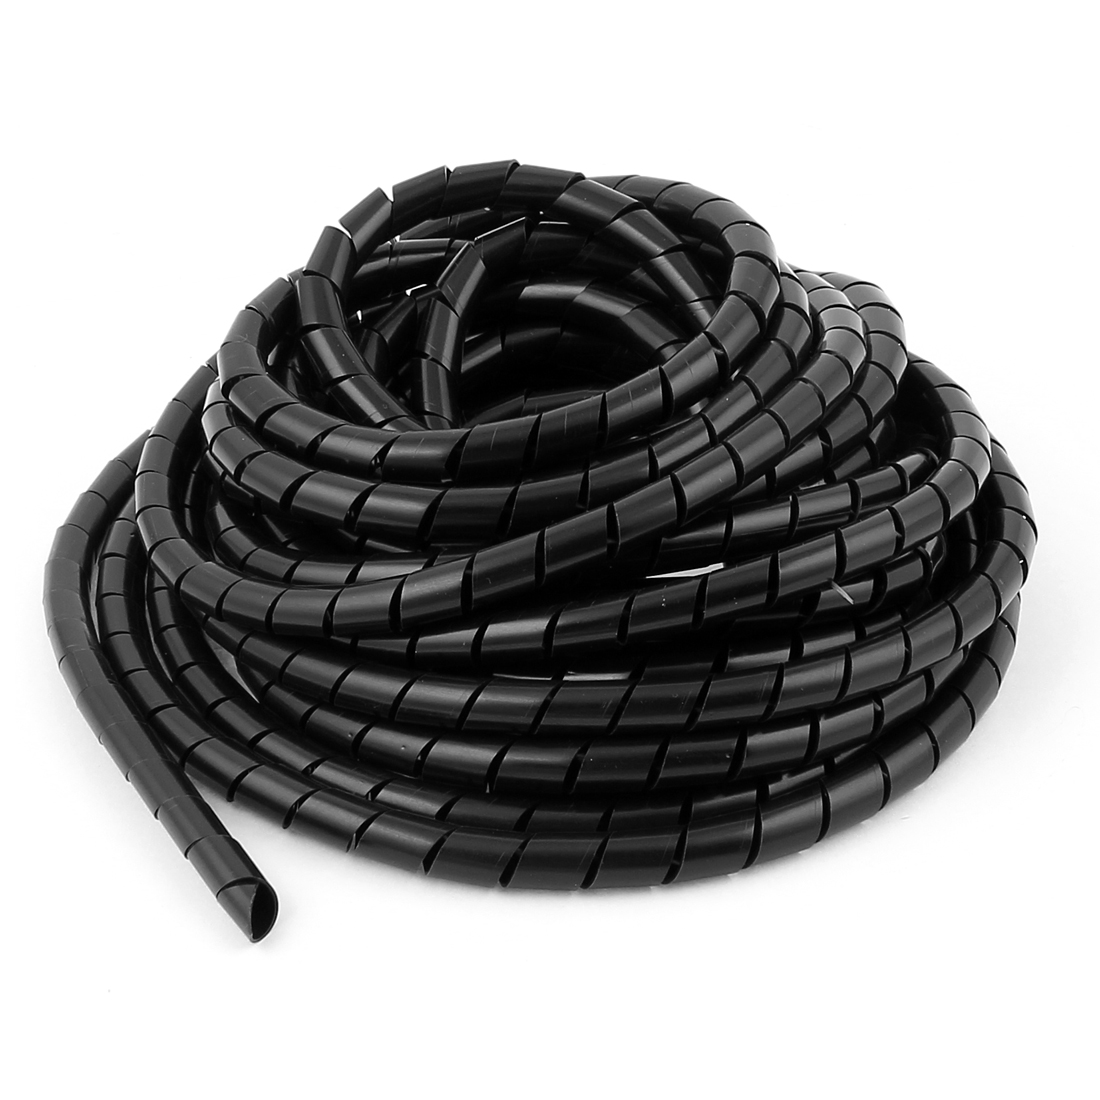 3pcs 25ft 8Meters 10mm x 8mm Black Flexible Wire Spiral Wrap Sleeving Band Tube Cable Manager Protector